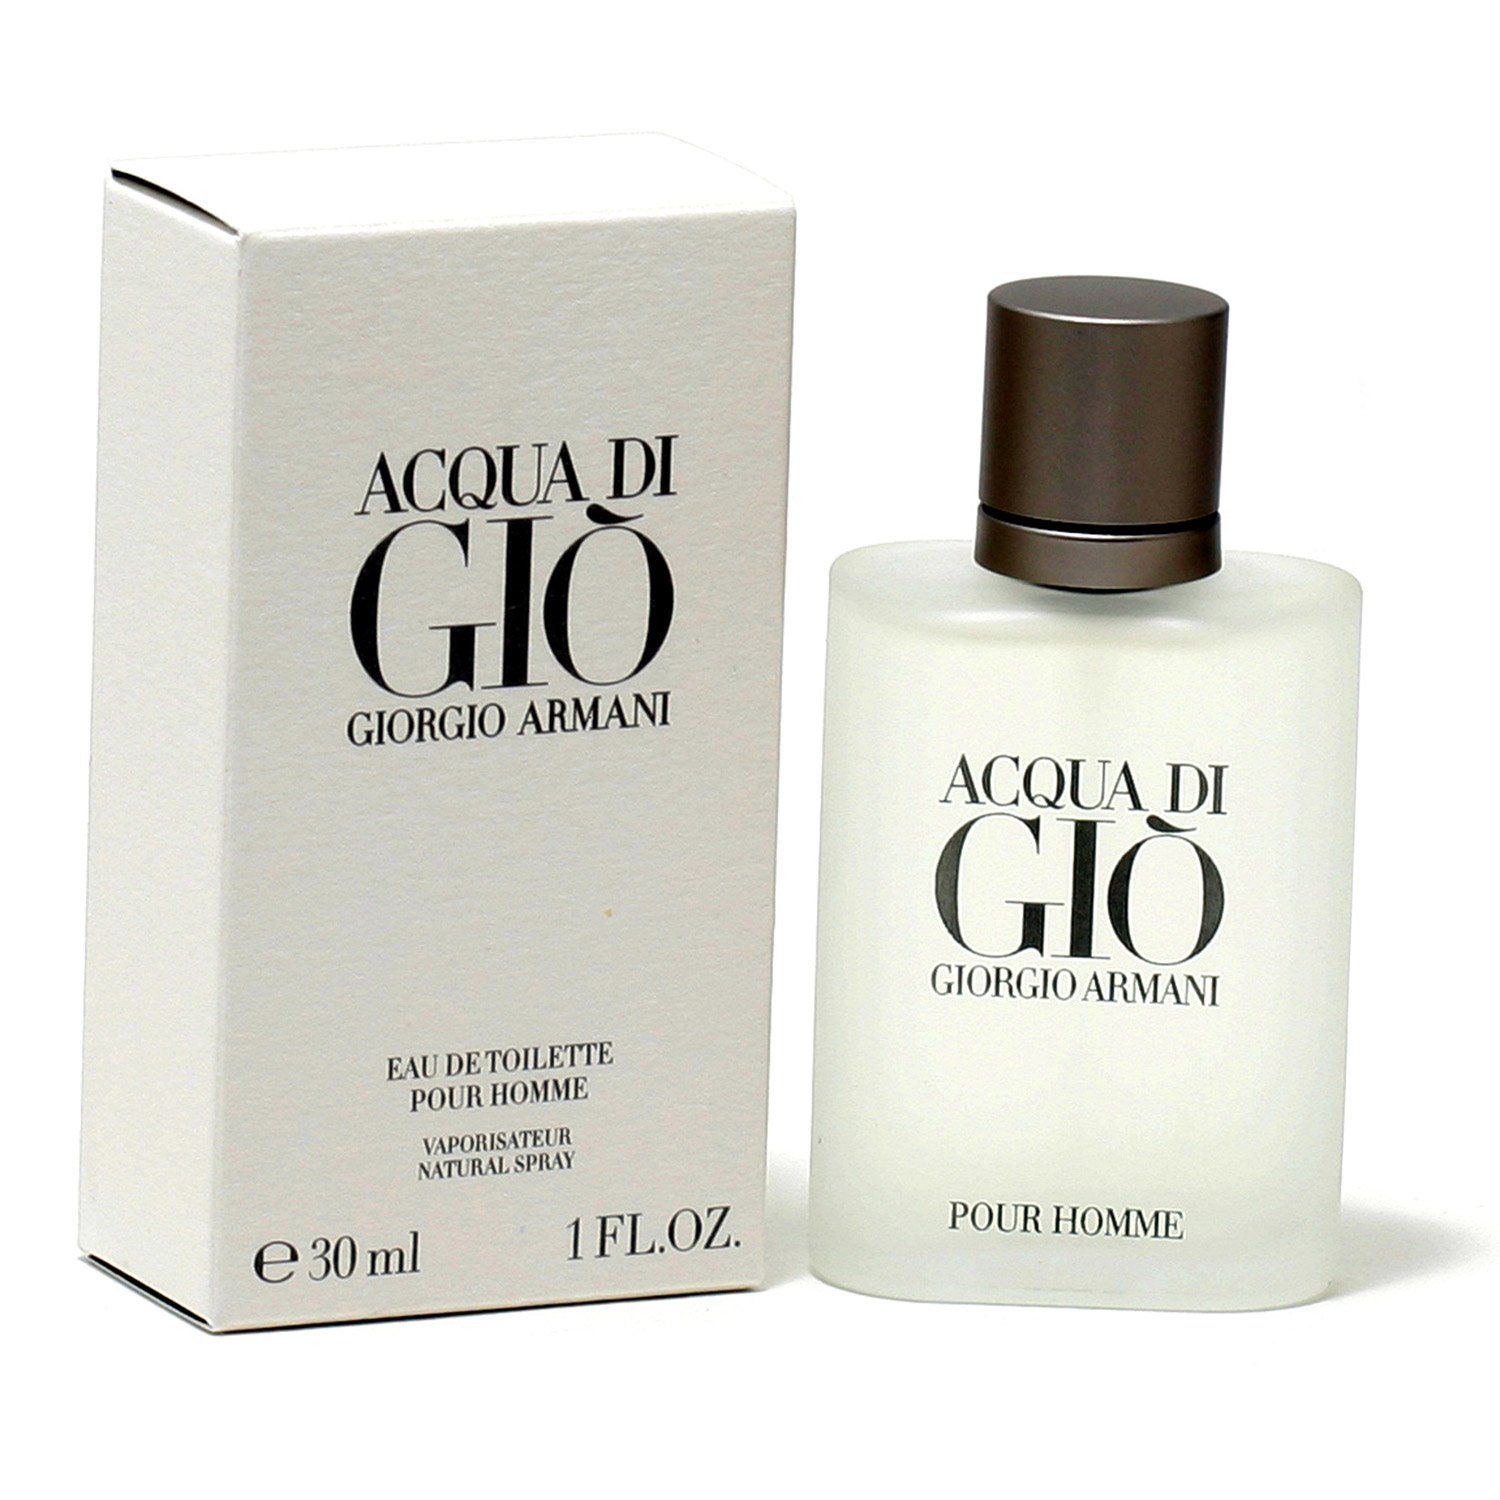 51cad657784e ACQUA DI GIO FOR MEN BY GIORGIO ARMANI - EAU DE TOILETTE SPRAY ...